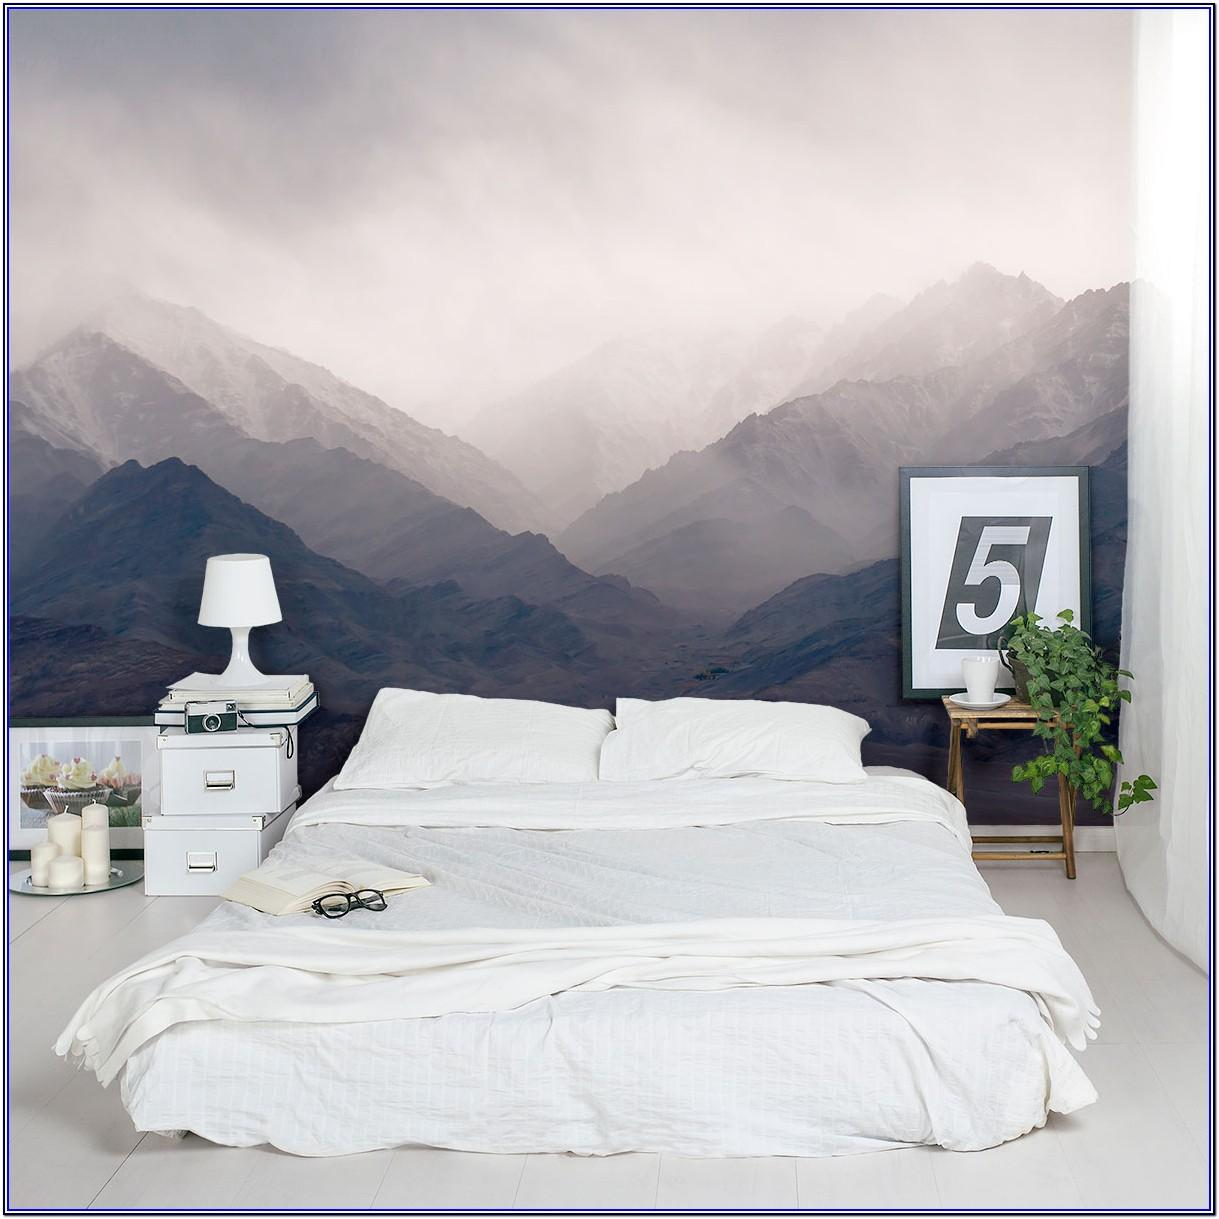 Bedroom Mural Painting Ideas